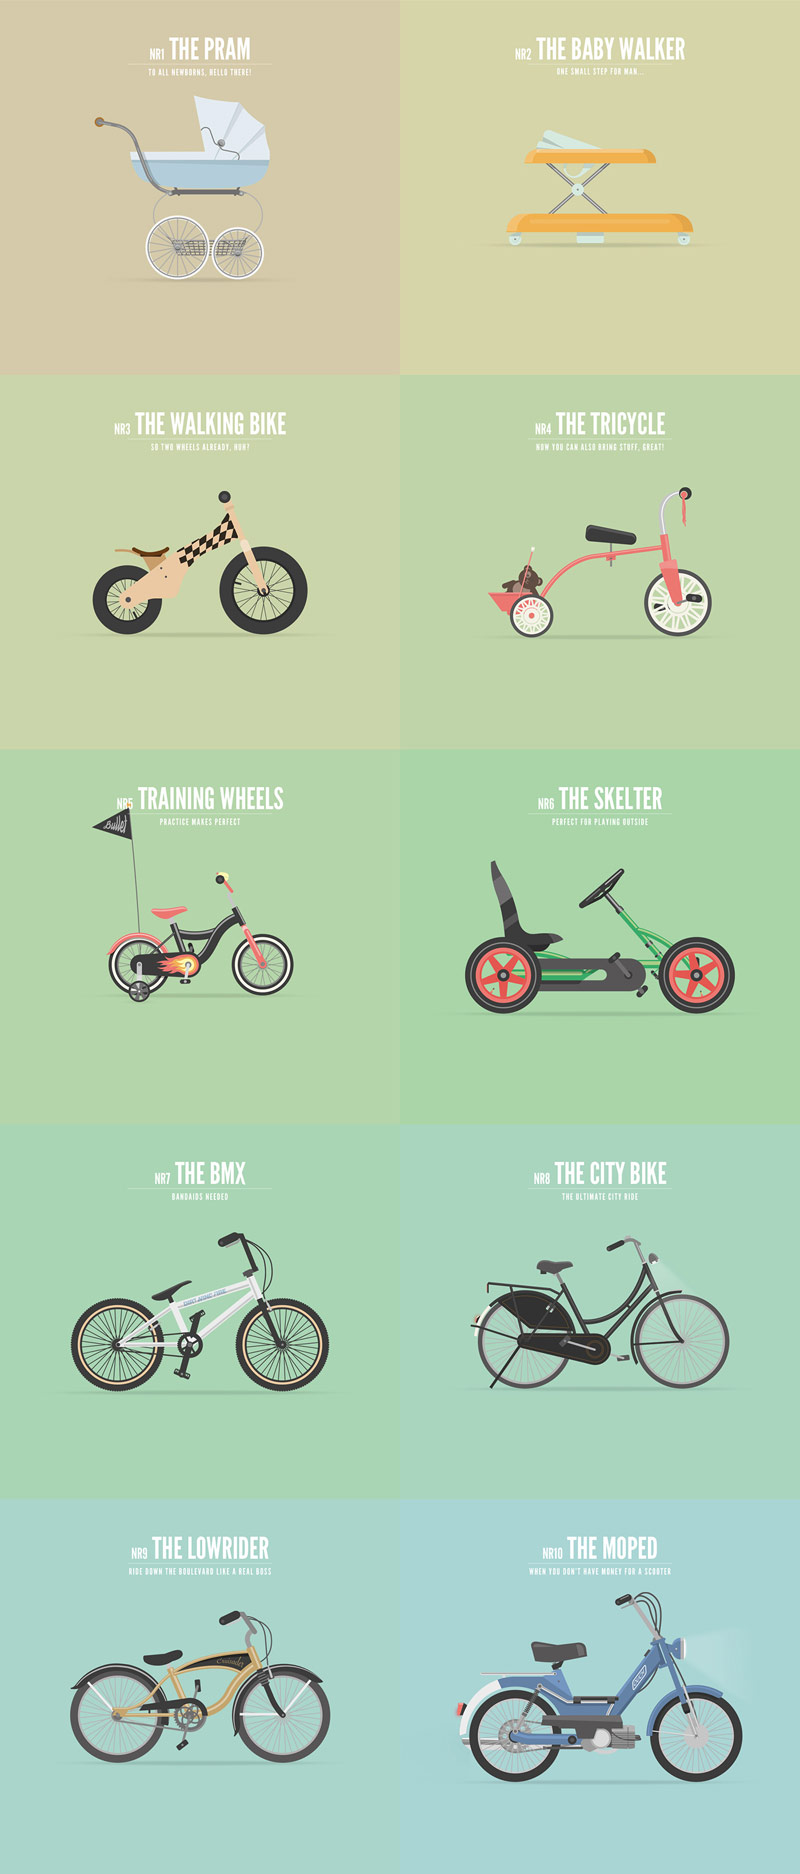 Life on Wheels – Illustrations and Animations